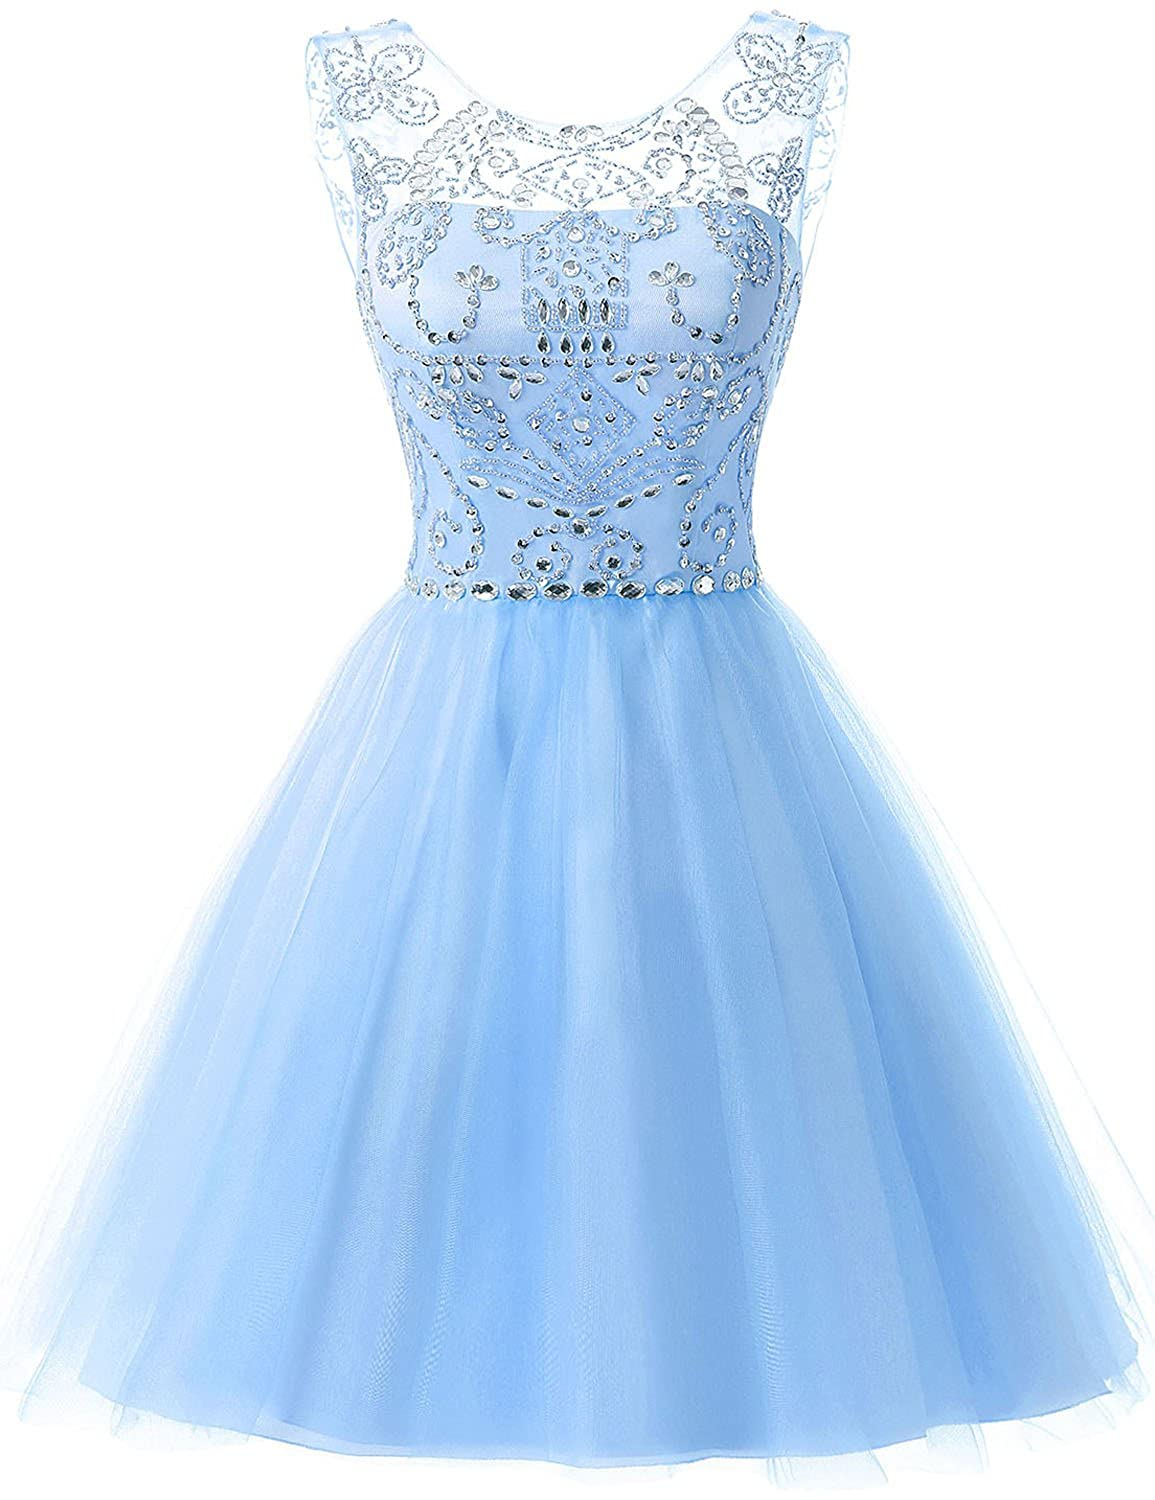 133sky bluee Sarahbridal Women's Short Tulle Beading Homecoming Dresses 2019 Prom Party Gowns